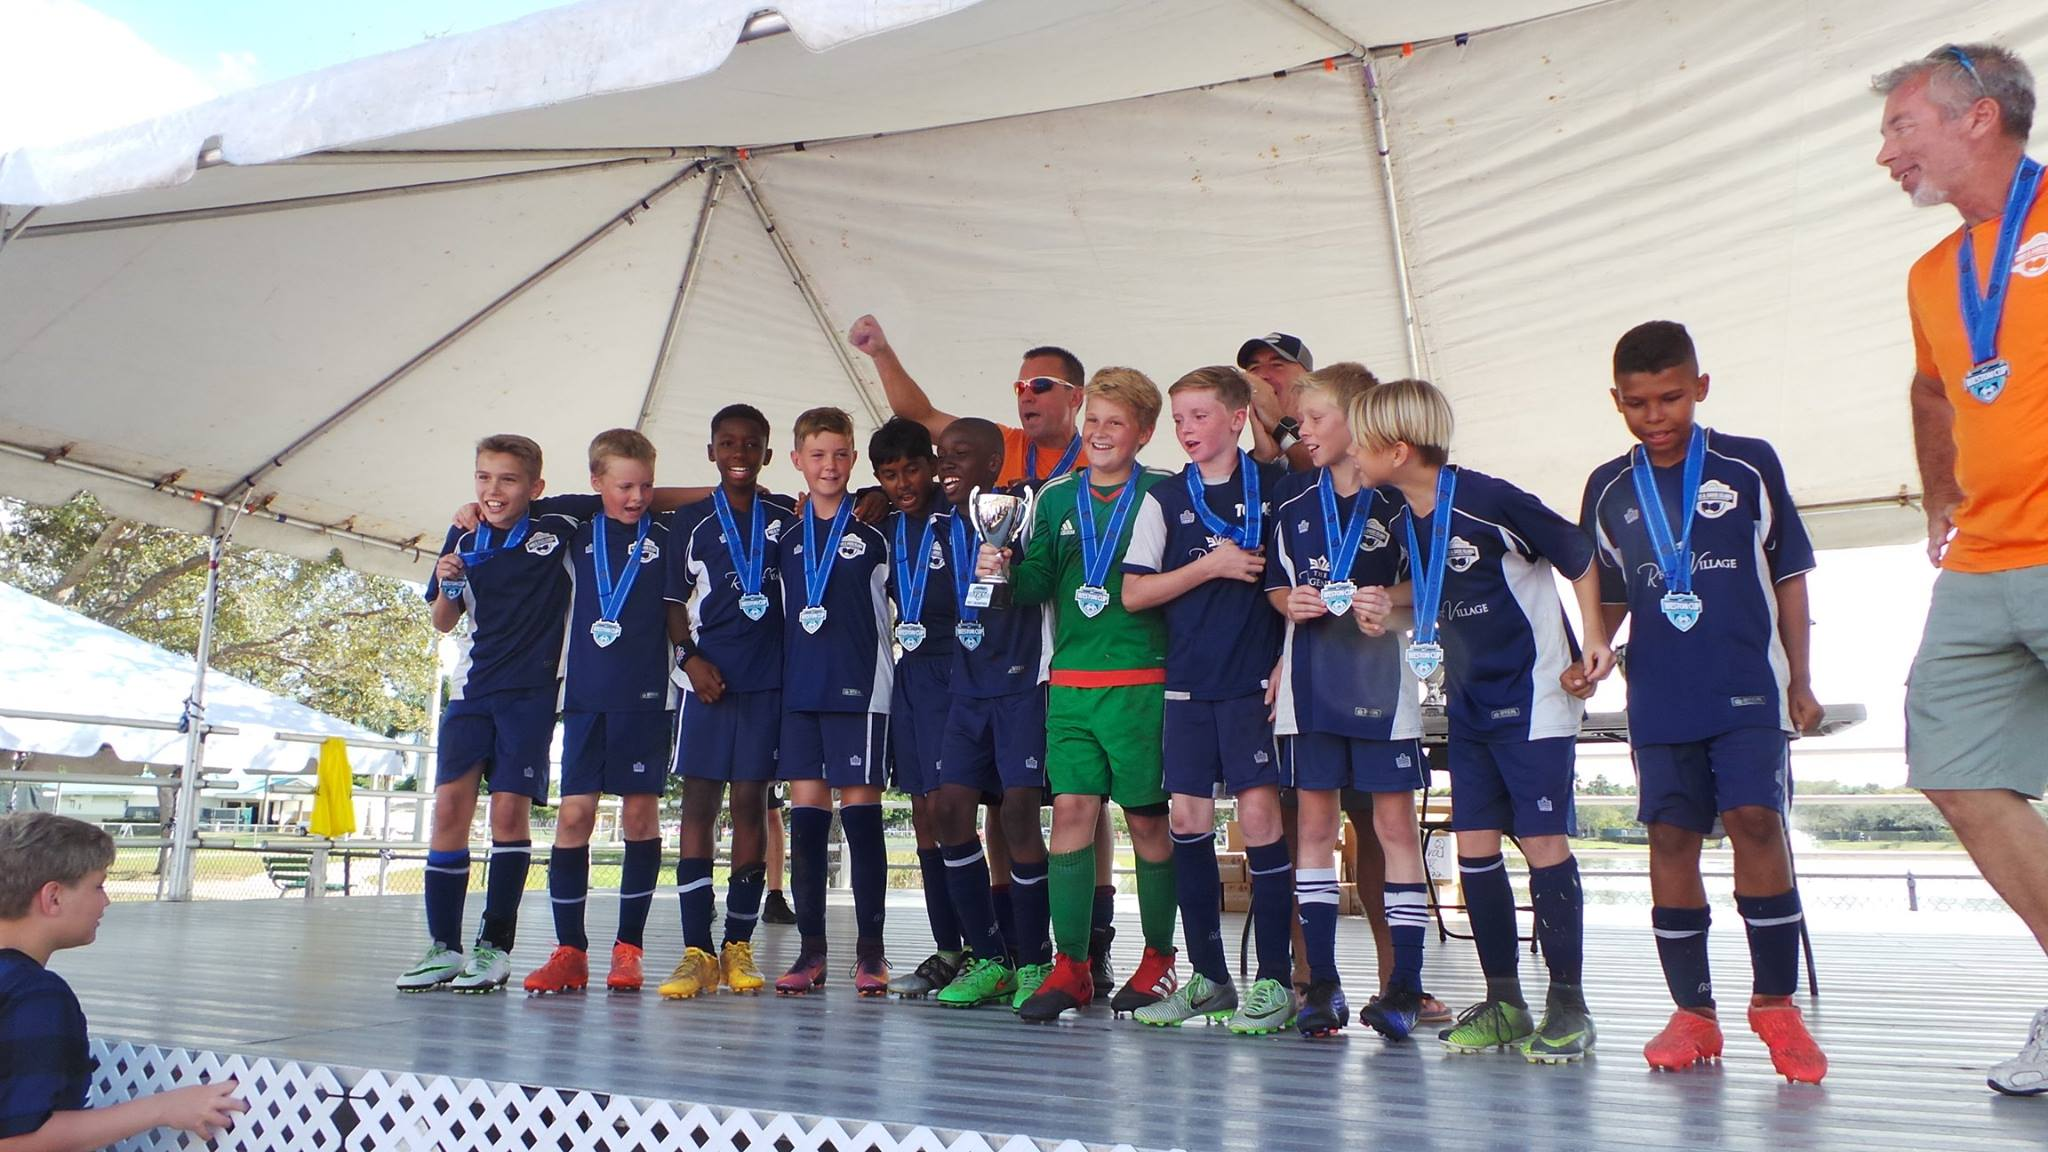 Boys under 12 bronze medal winners